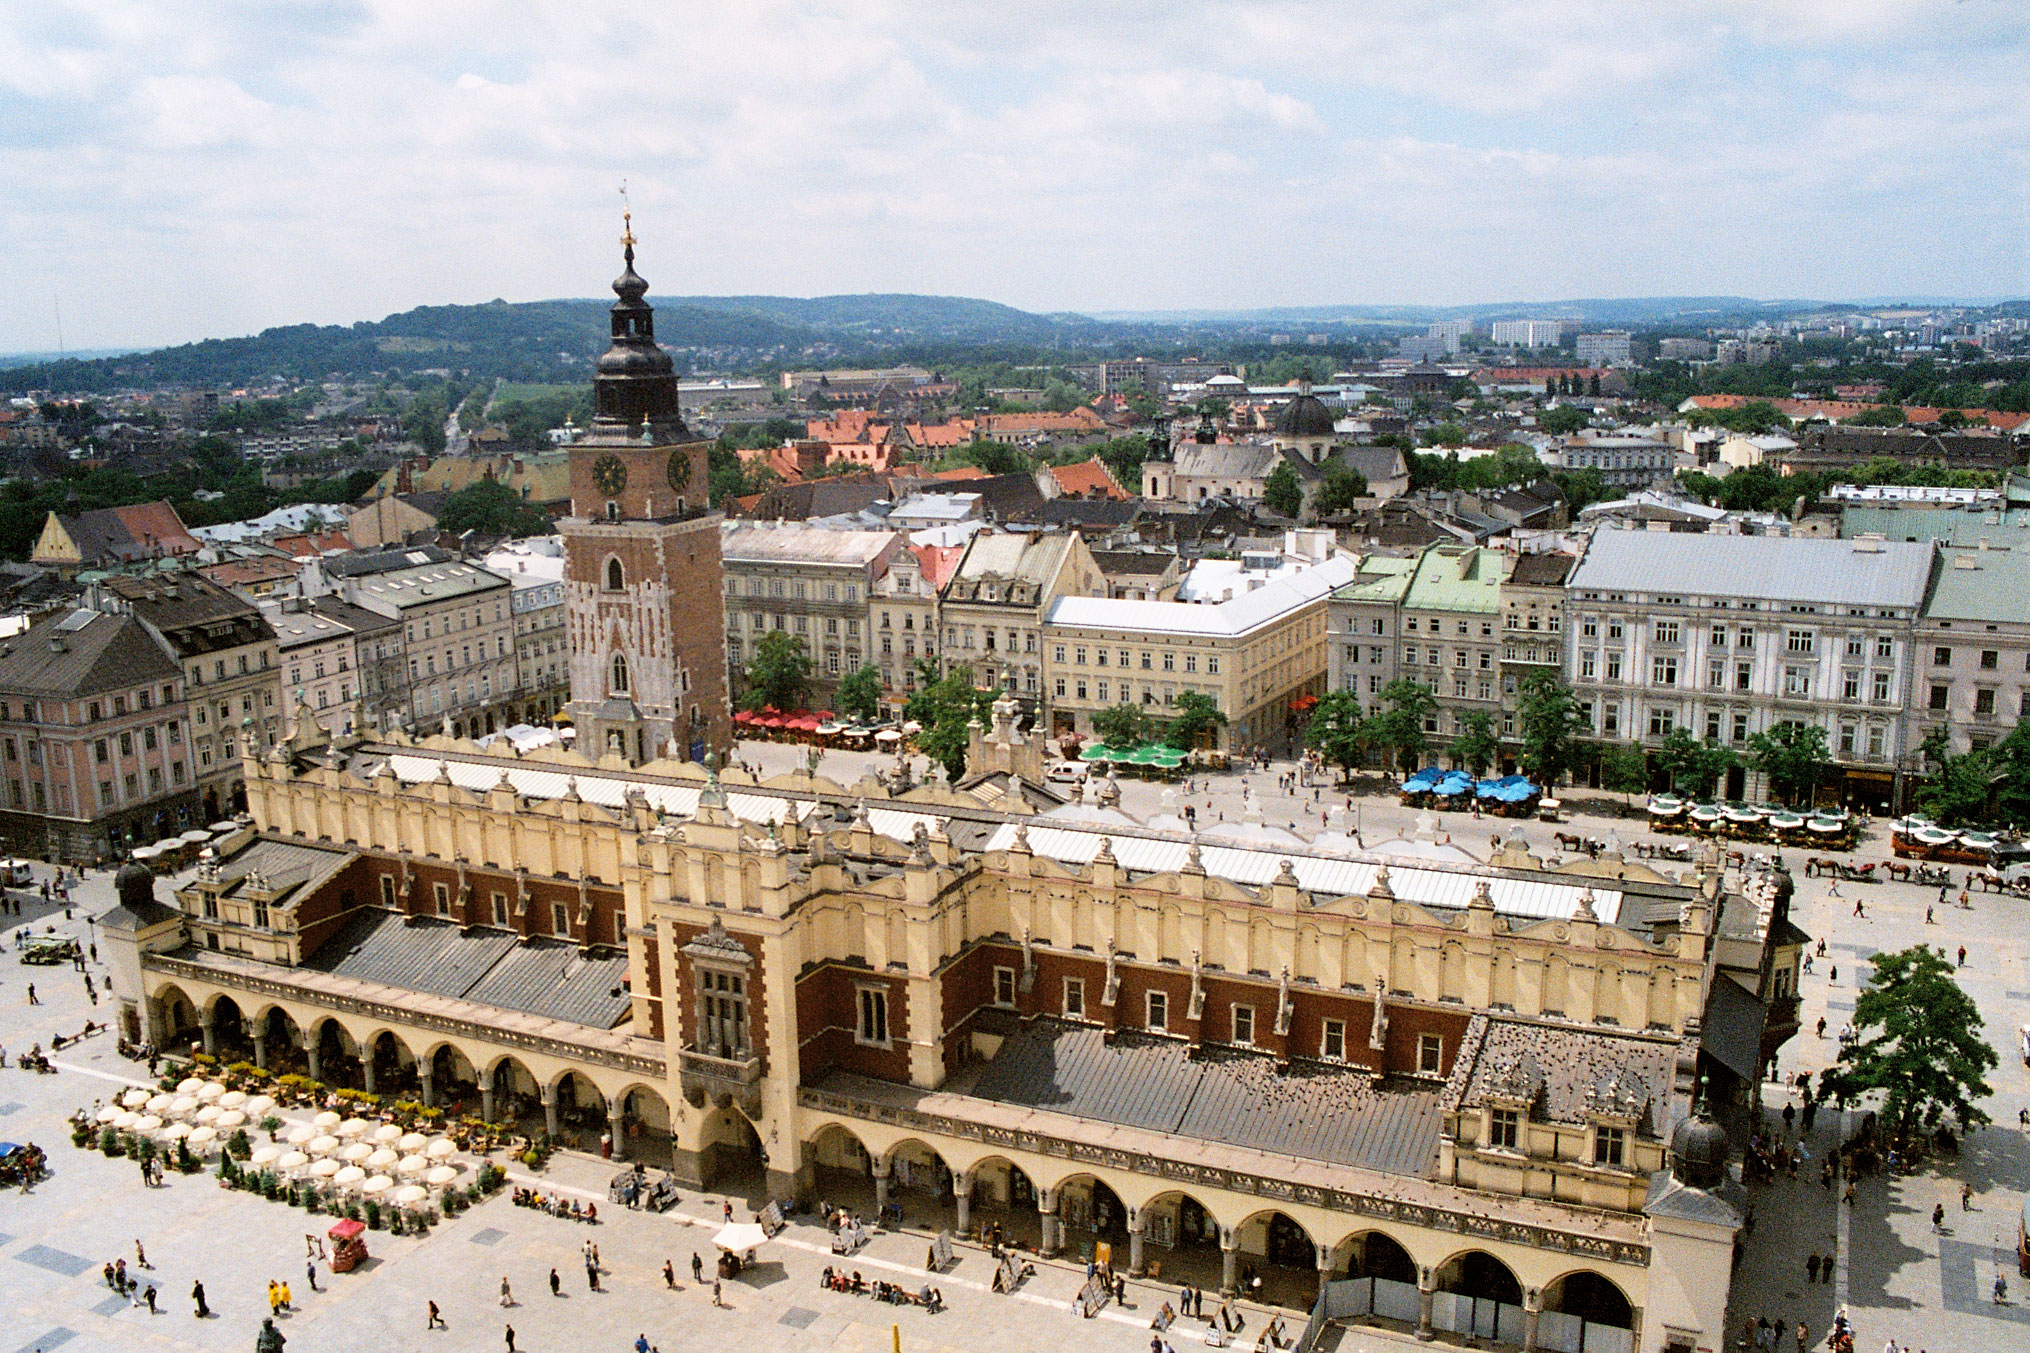 Backpacking In Krakow Undiscovered Gem For Budget Travellers